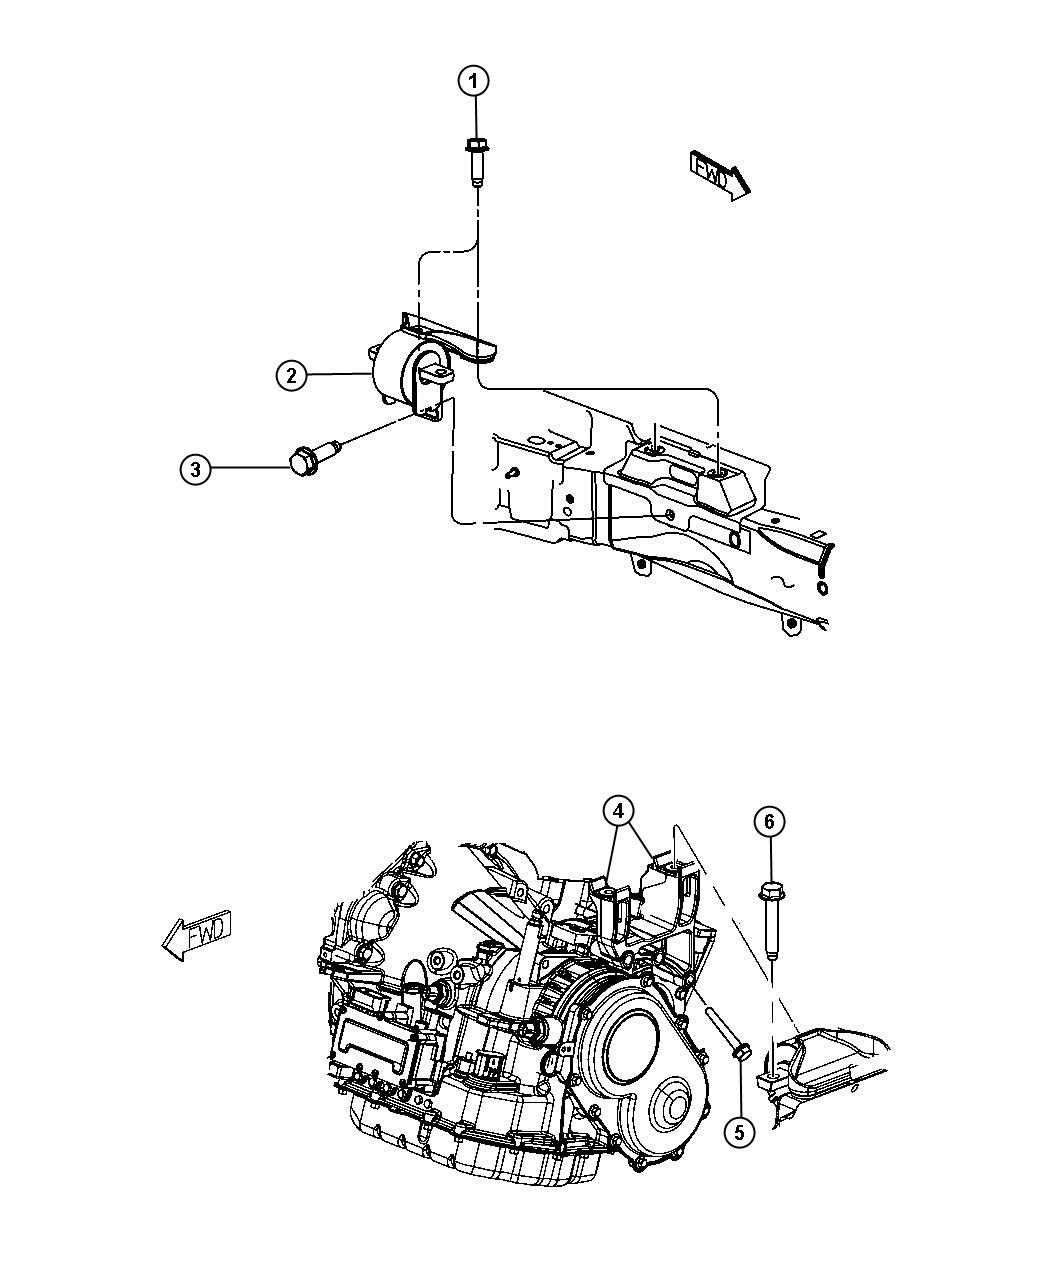 Saturn Vue Parts Diagram